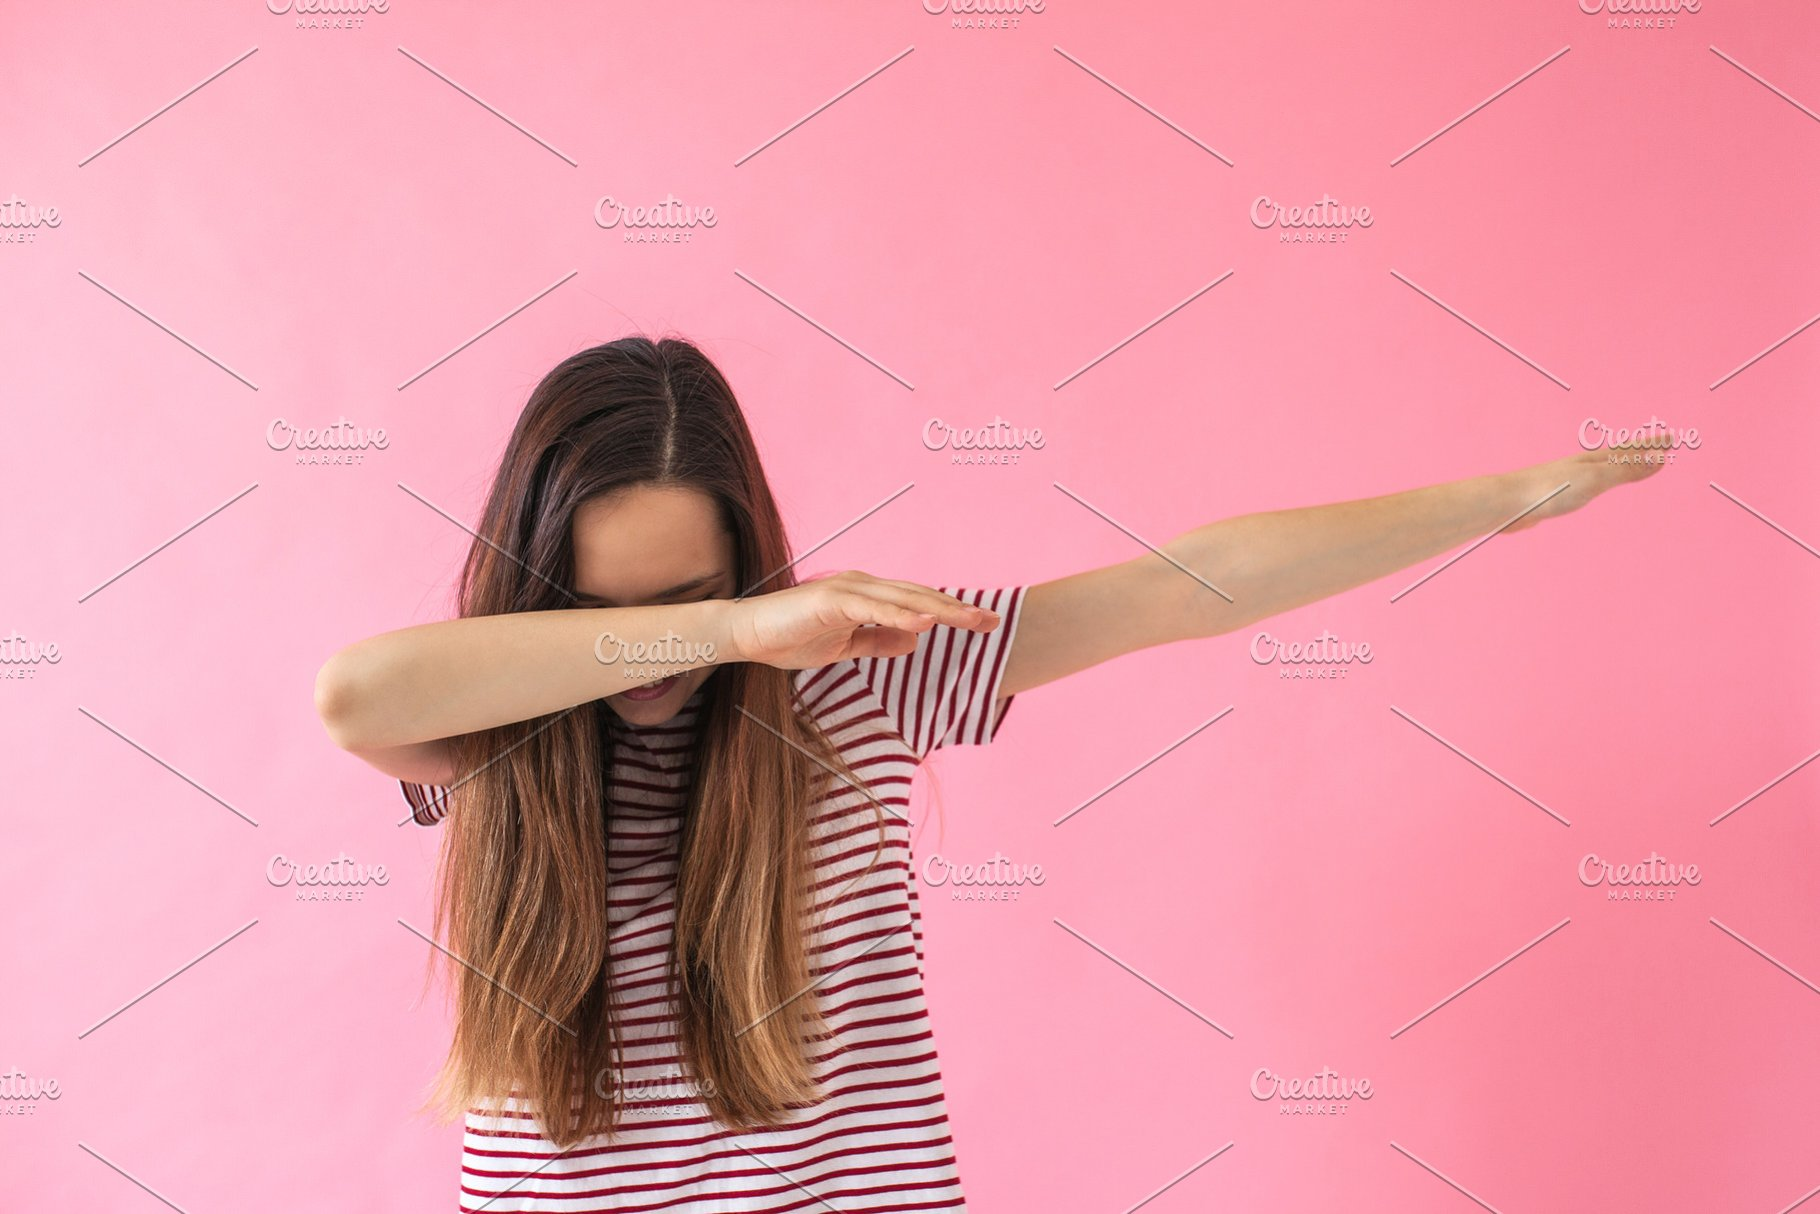 Young girl doing dab dance gesture